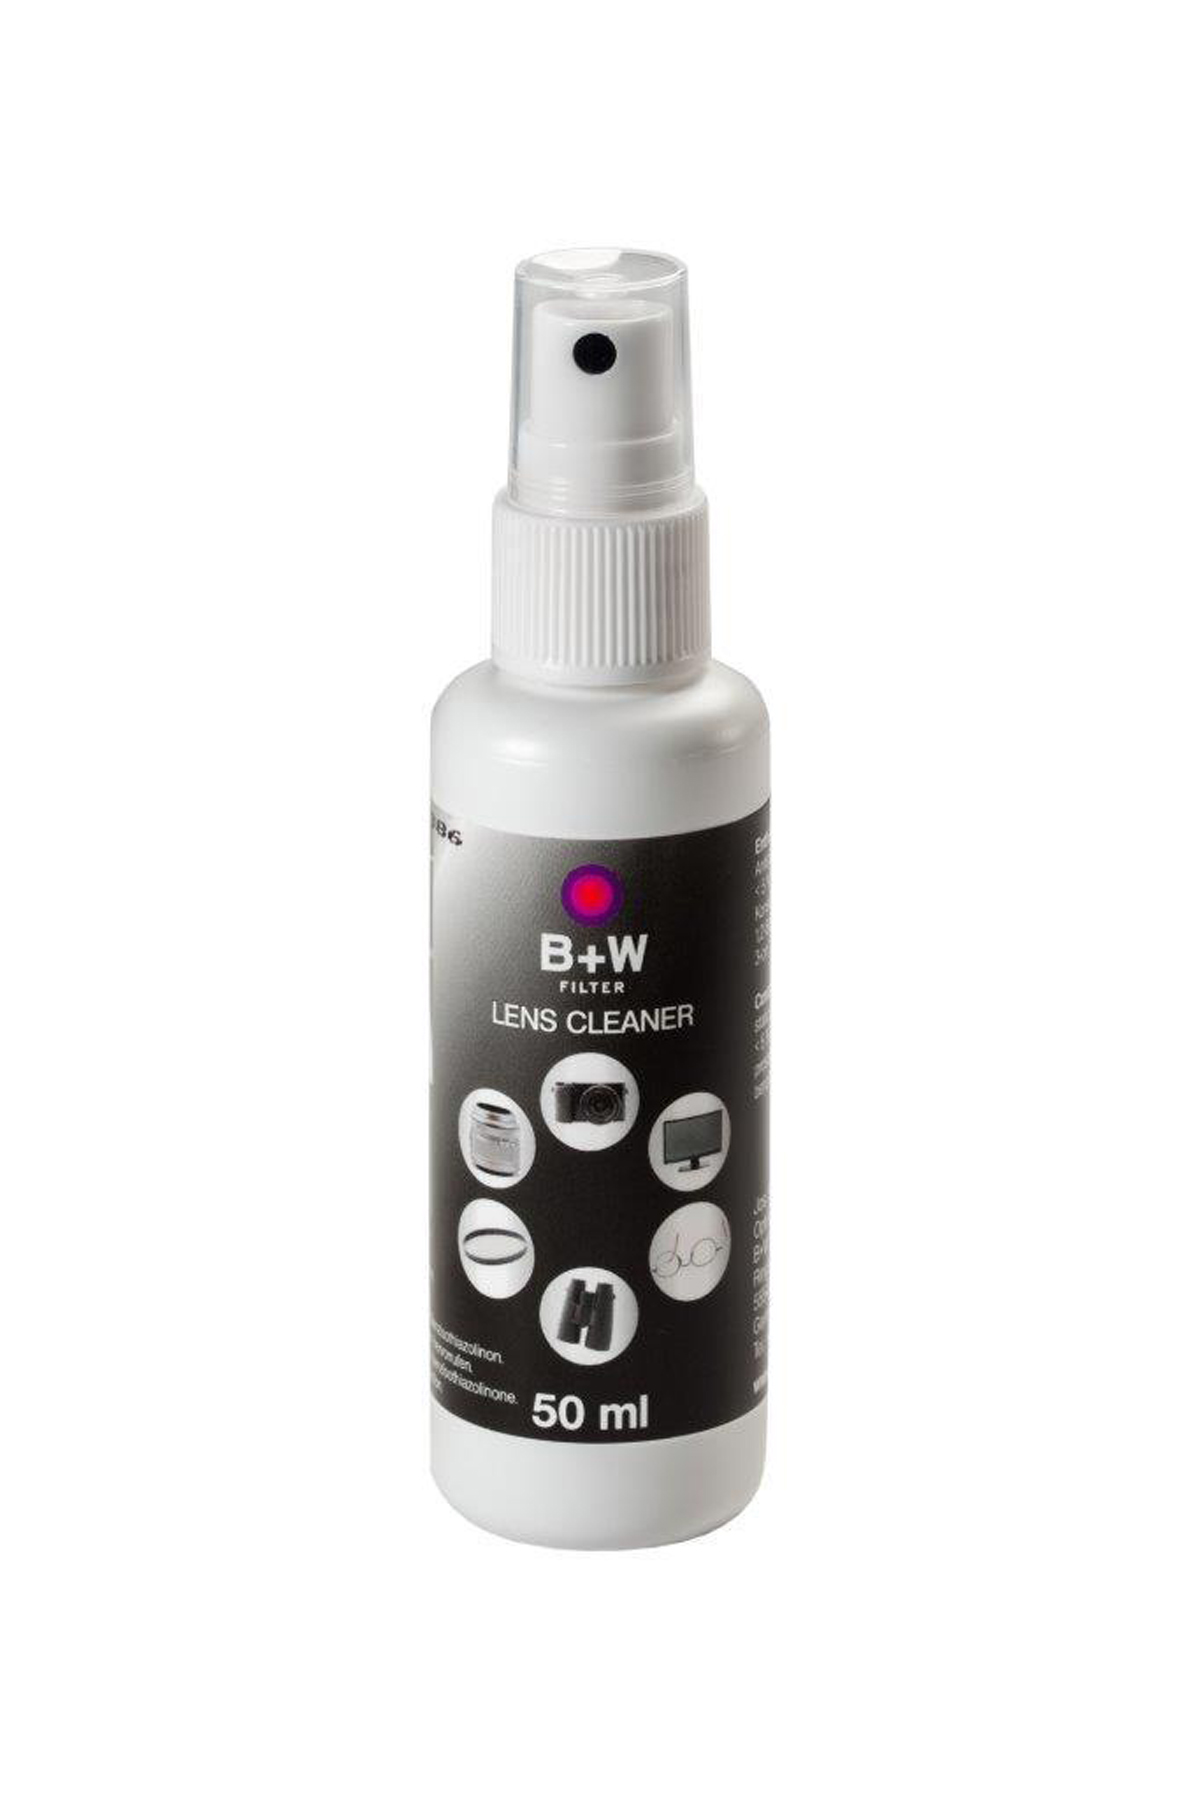 B+w Lens Cleaner Pumpspray 50 ml 108275